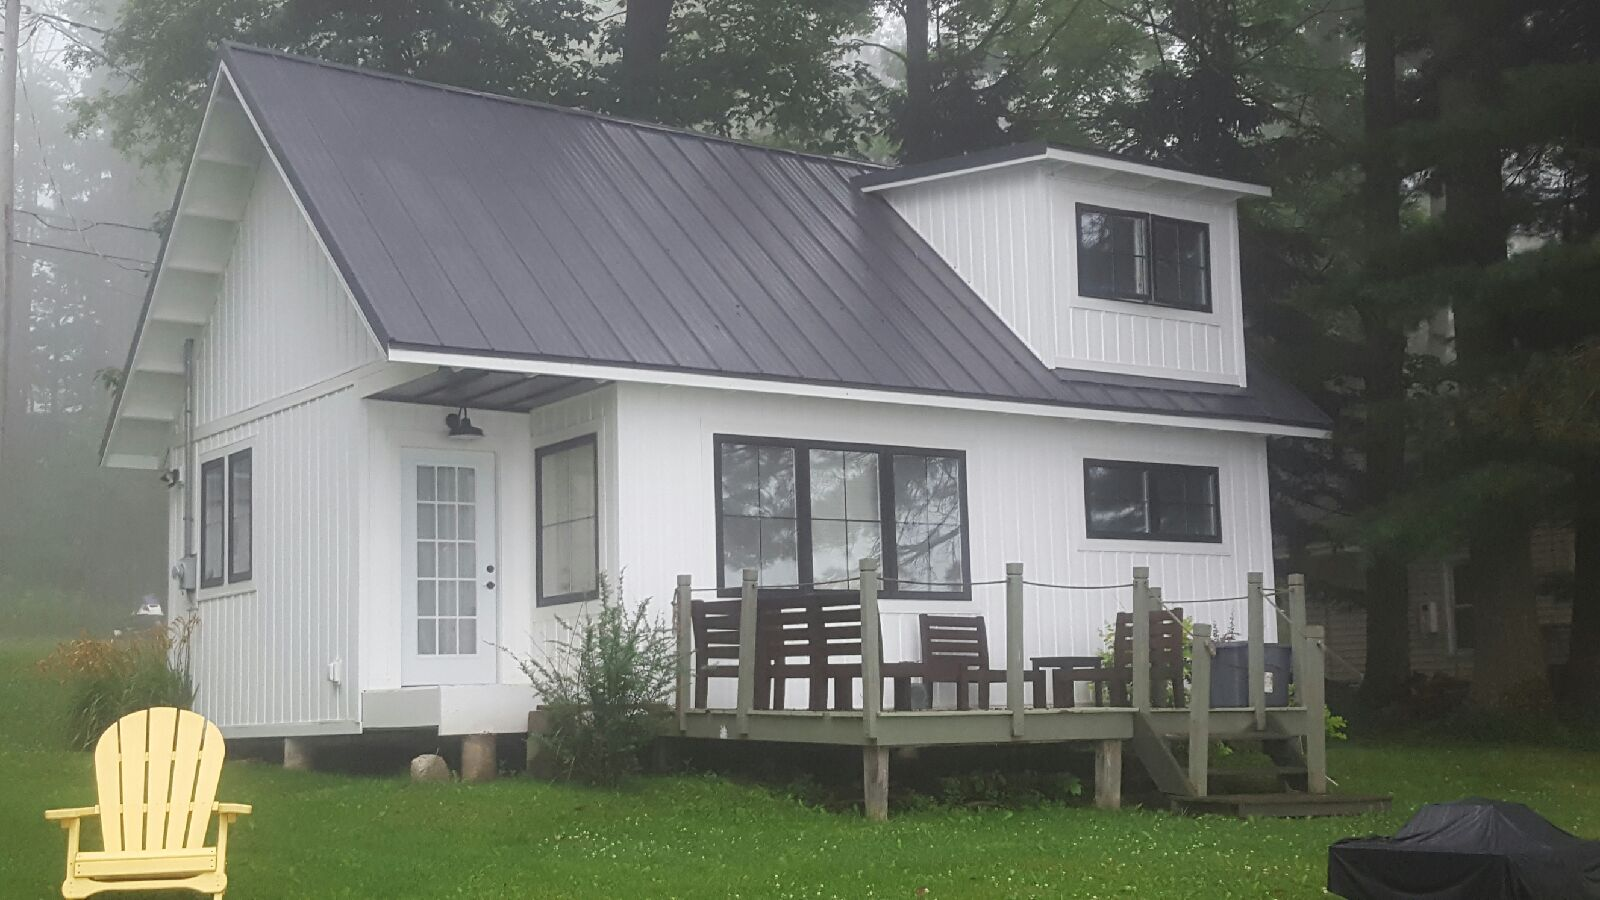 New flat metal roof on the back of a Silver Lake cottage in Perry, NY.